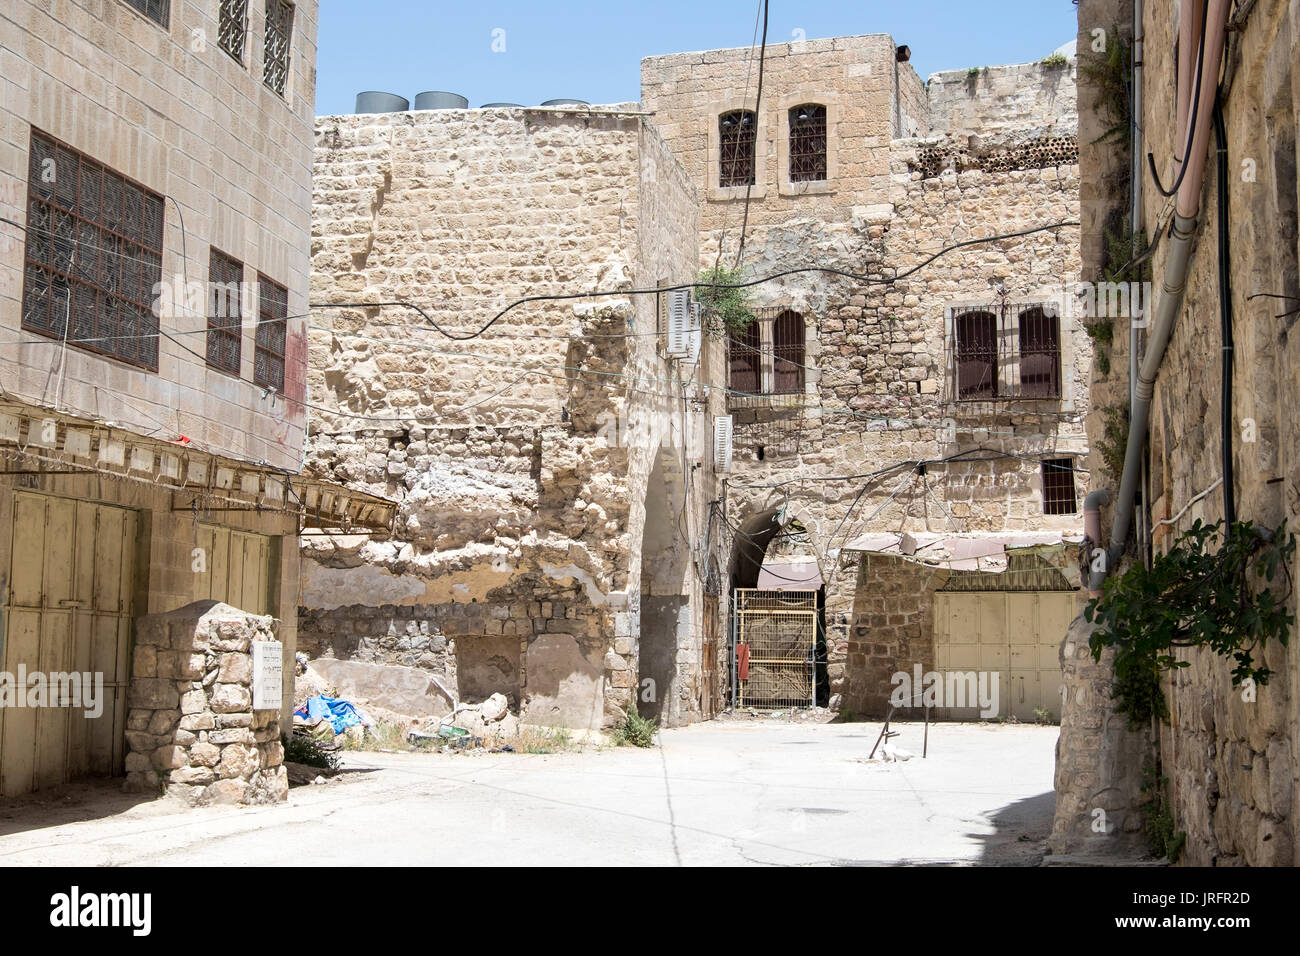 Deserted Shuhada Street, Hebron,West Bank, where Palestinians are banned due to the forceful occupation by 850 Israeli settlers - Stock Image